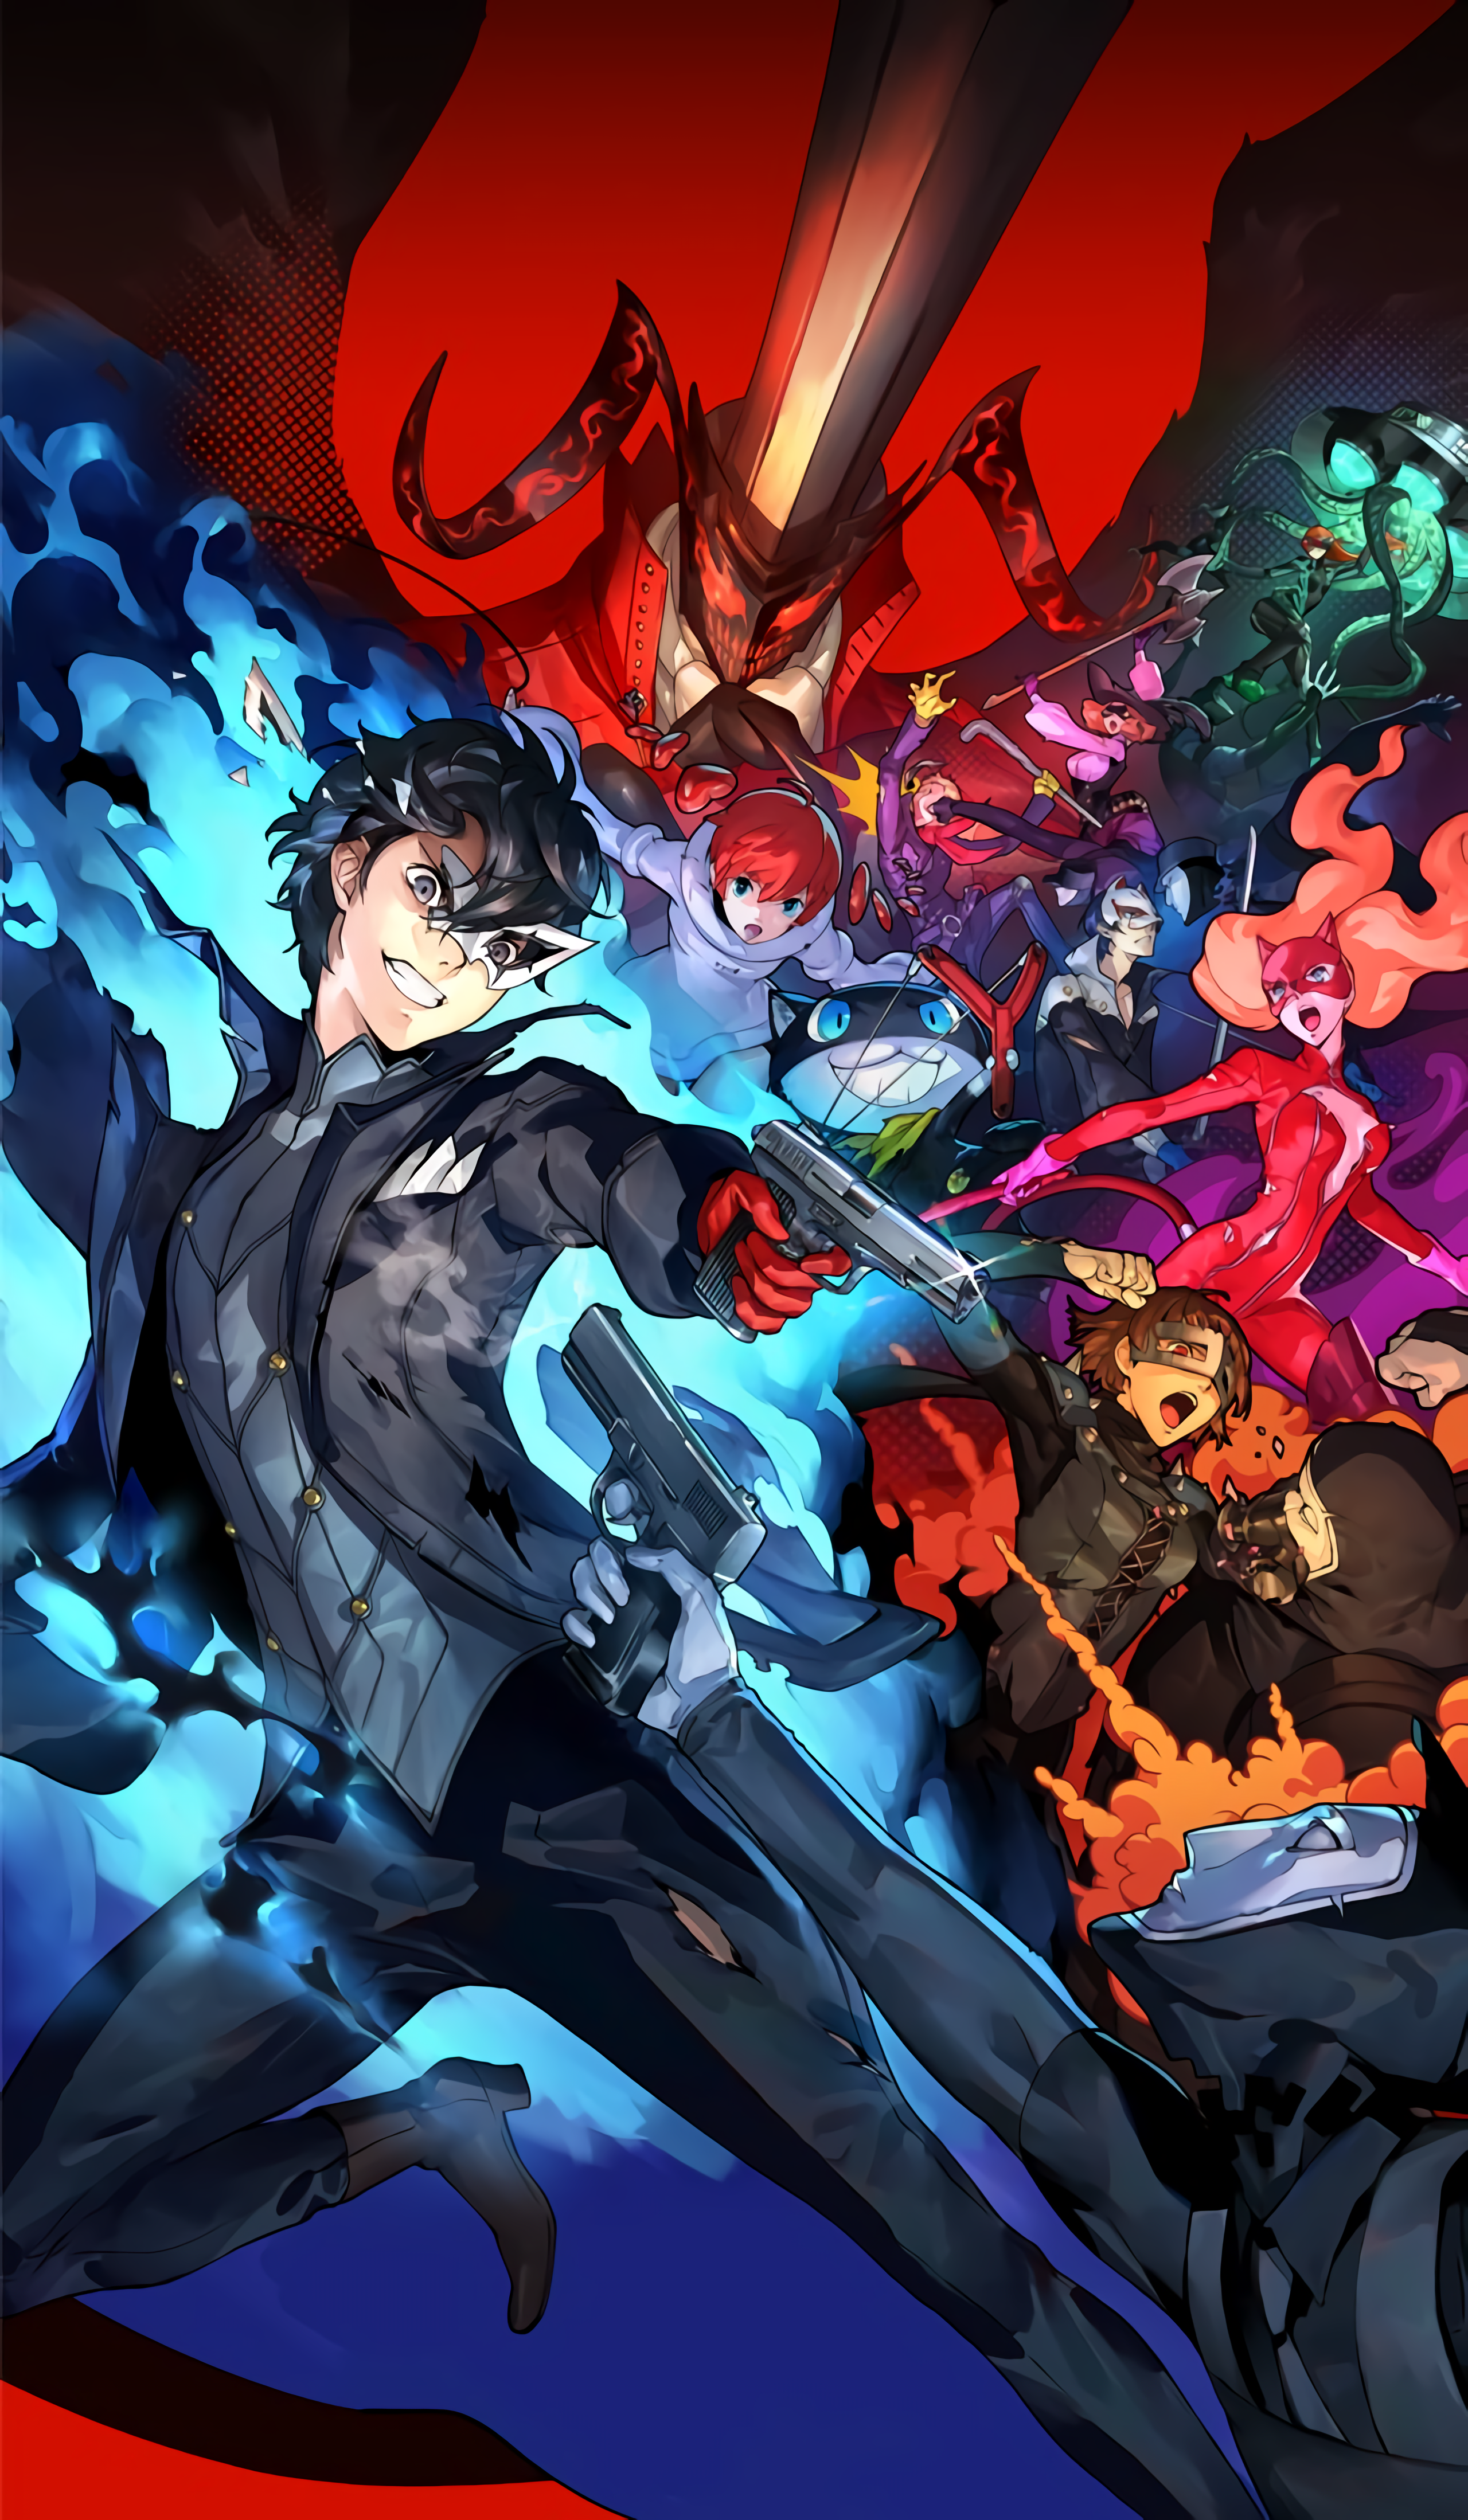 15 Photos Of Persona 5 Wallpaper Hd Phone 4k Wallpapers In 2020 Persona 5 Persona 5 Anime Persona 5 Joker